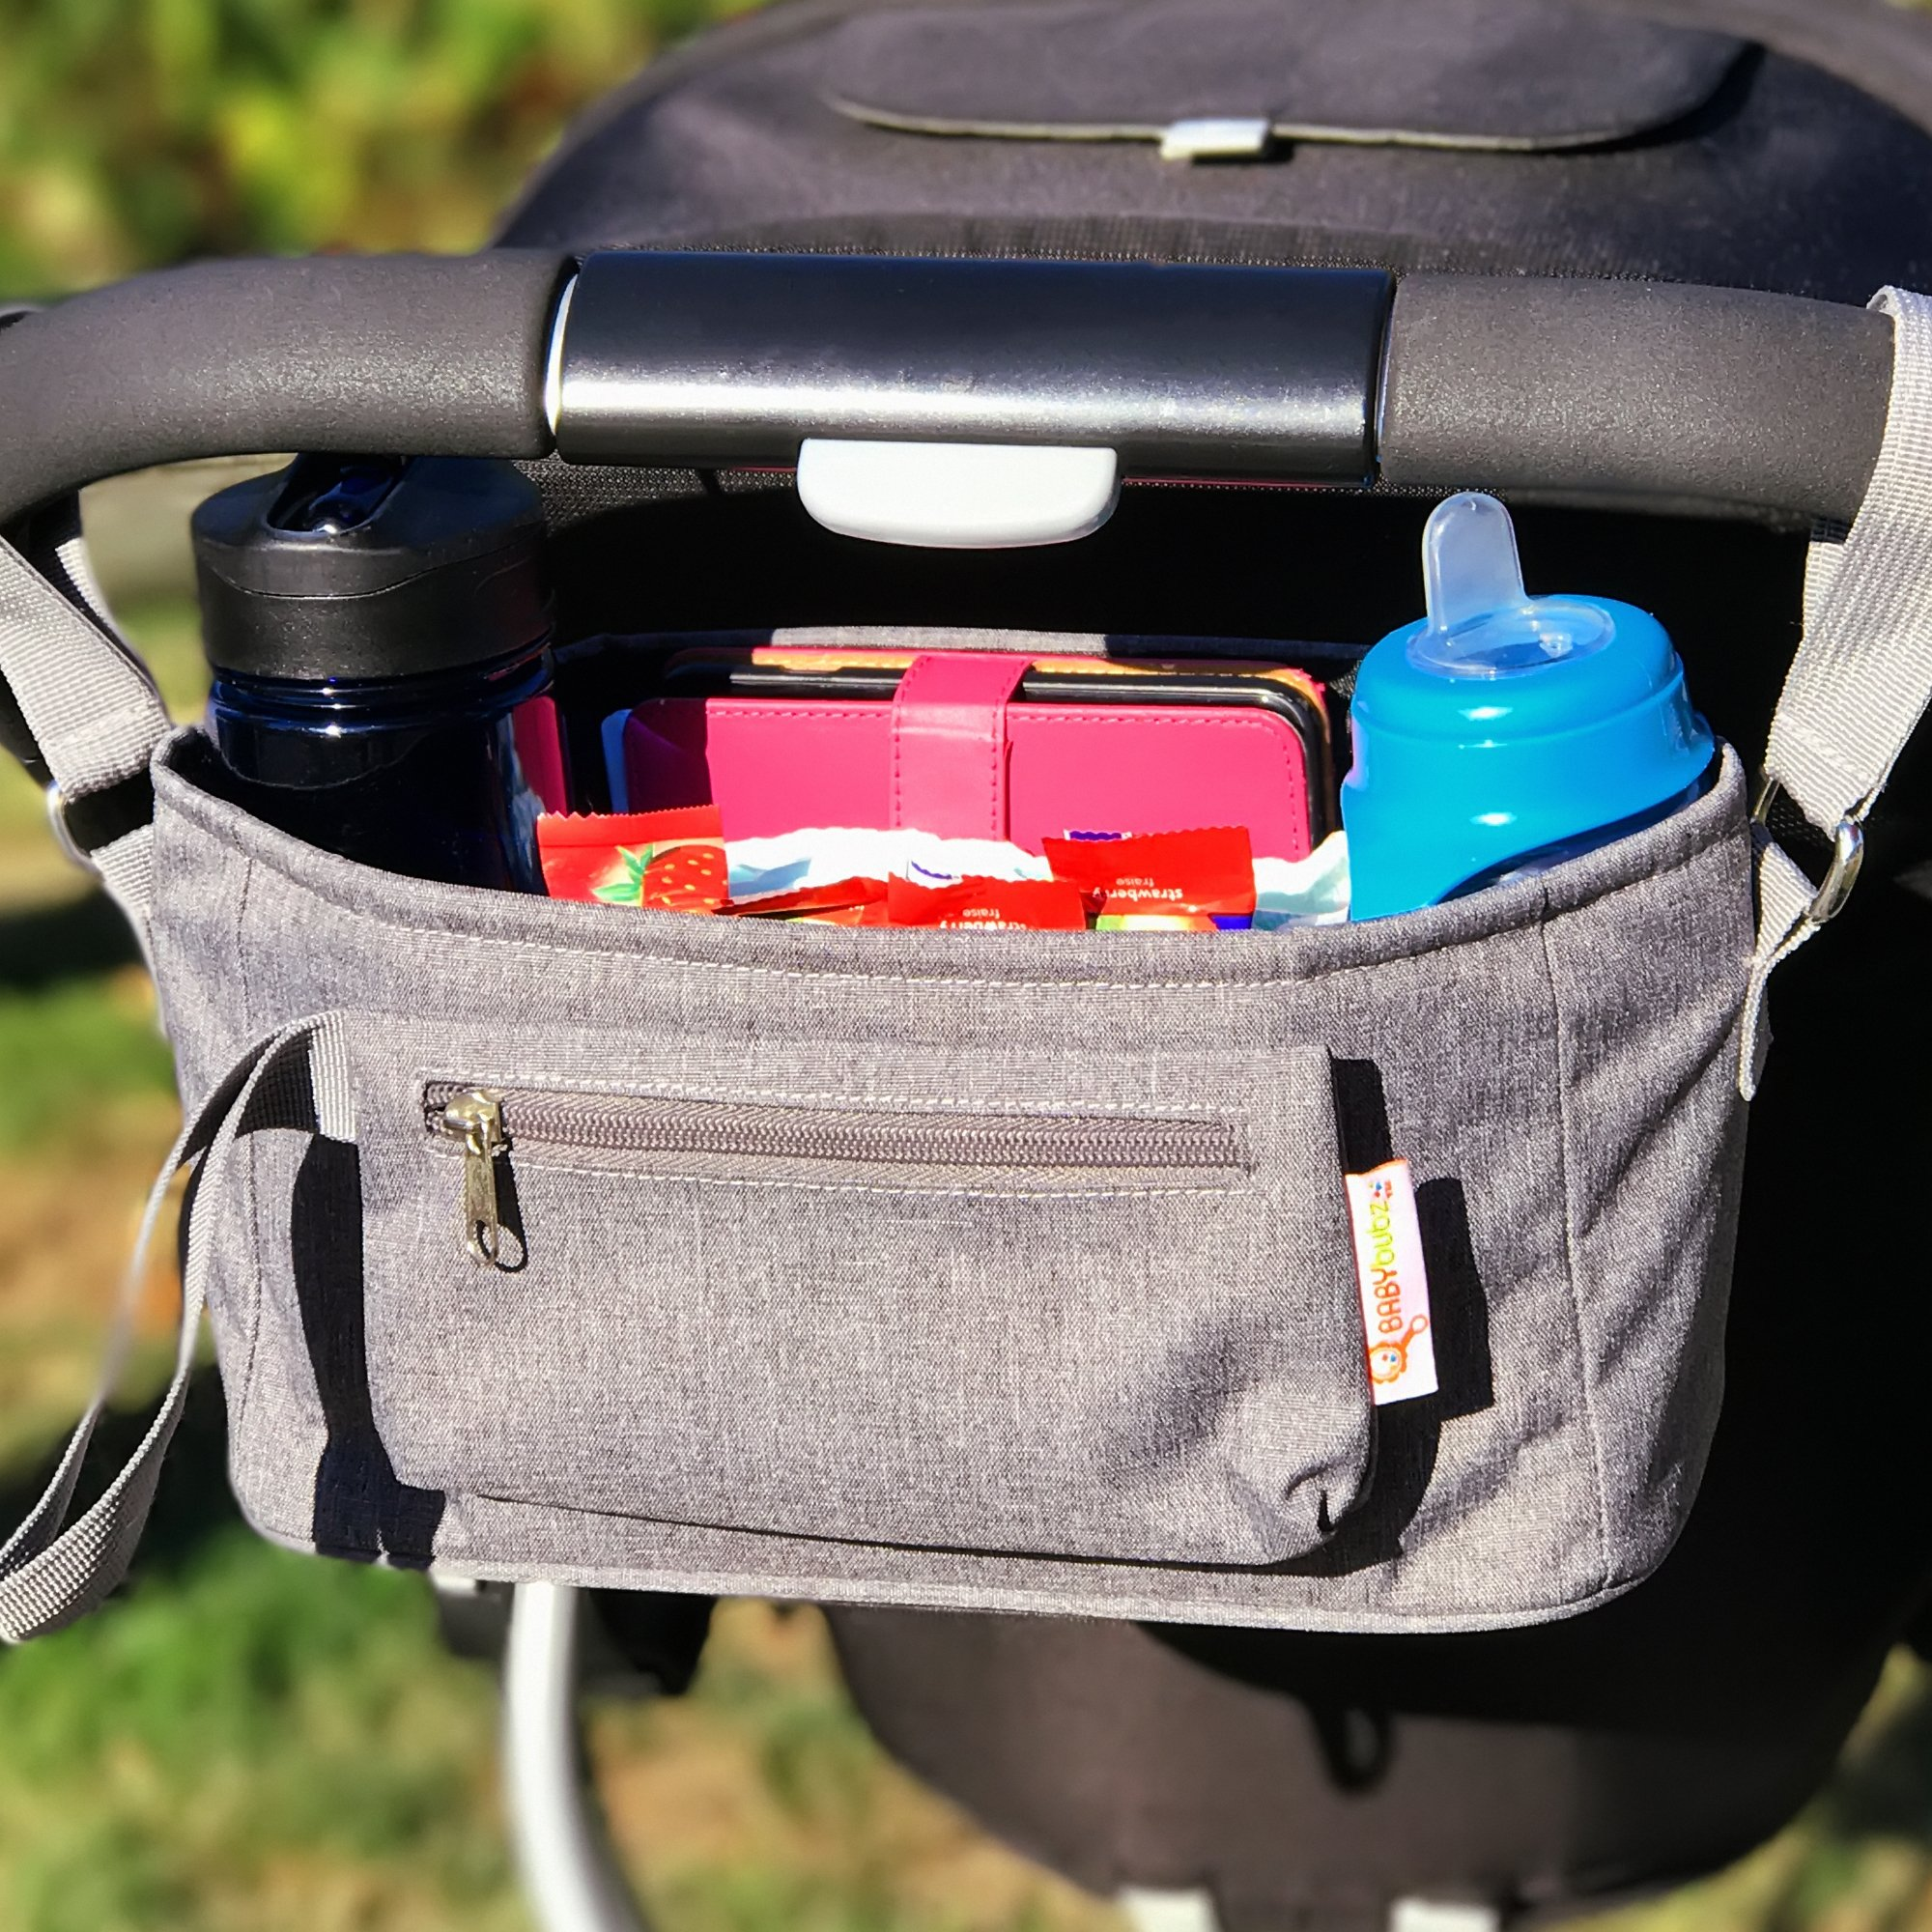 Baby Stroller Organizer by BabyBubz - Premium New Sleek Design - Durable Cup Holders - Universal Fit - tons of Storage for Phones, Keys, Diapers, Baby Toys, Snacks, Accessories - Best Shower Gift by BabyBubz (Image #8)